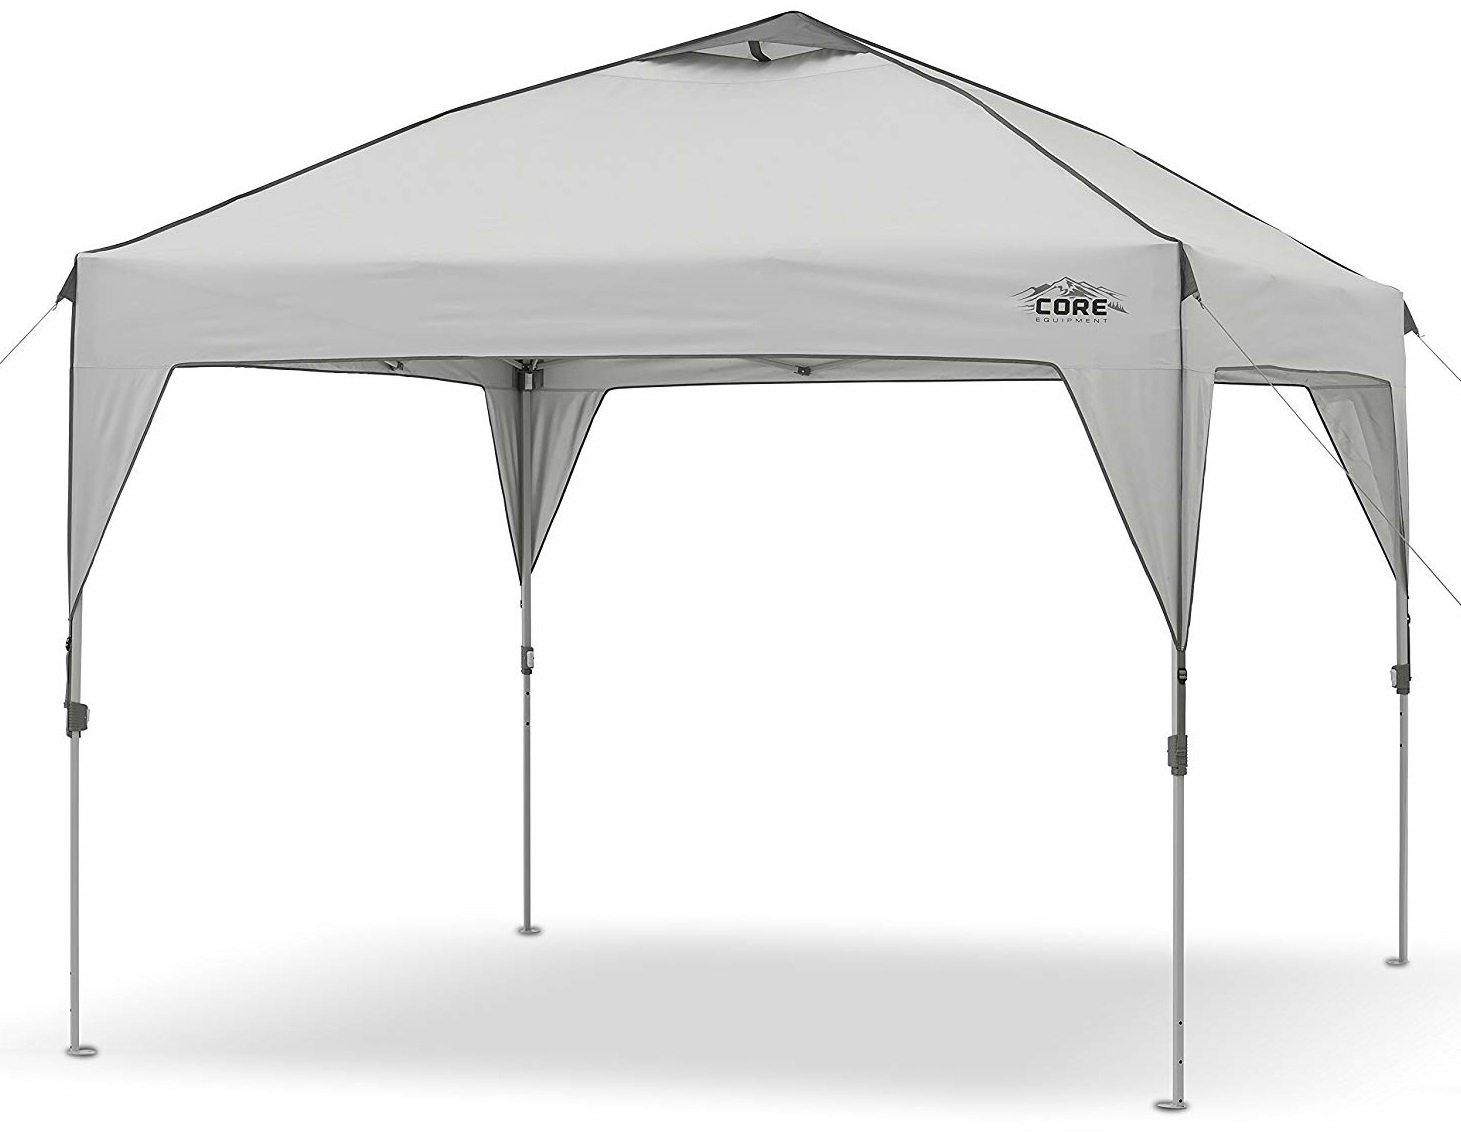 CORE 10' x 10' Instant Shelter Pop-Up Canopy